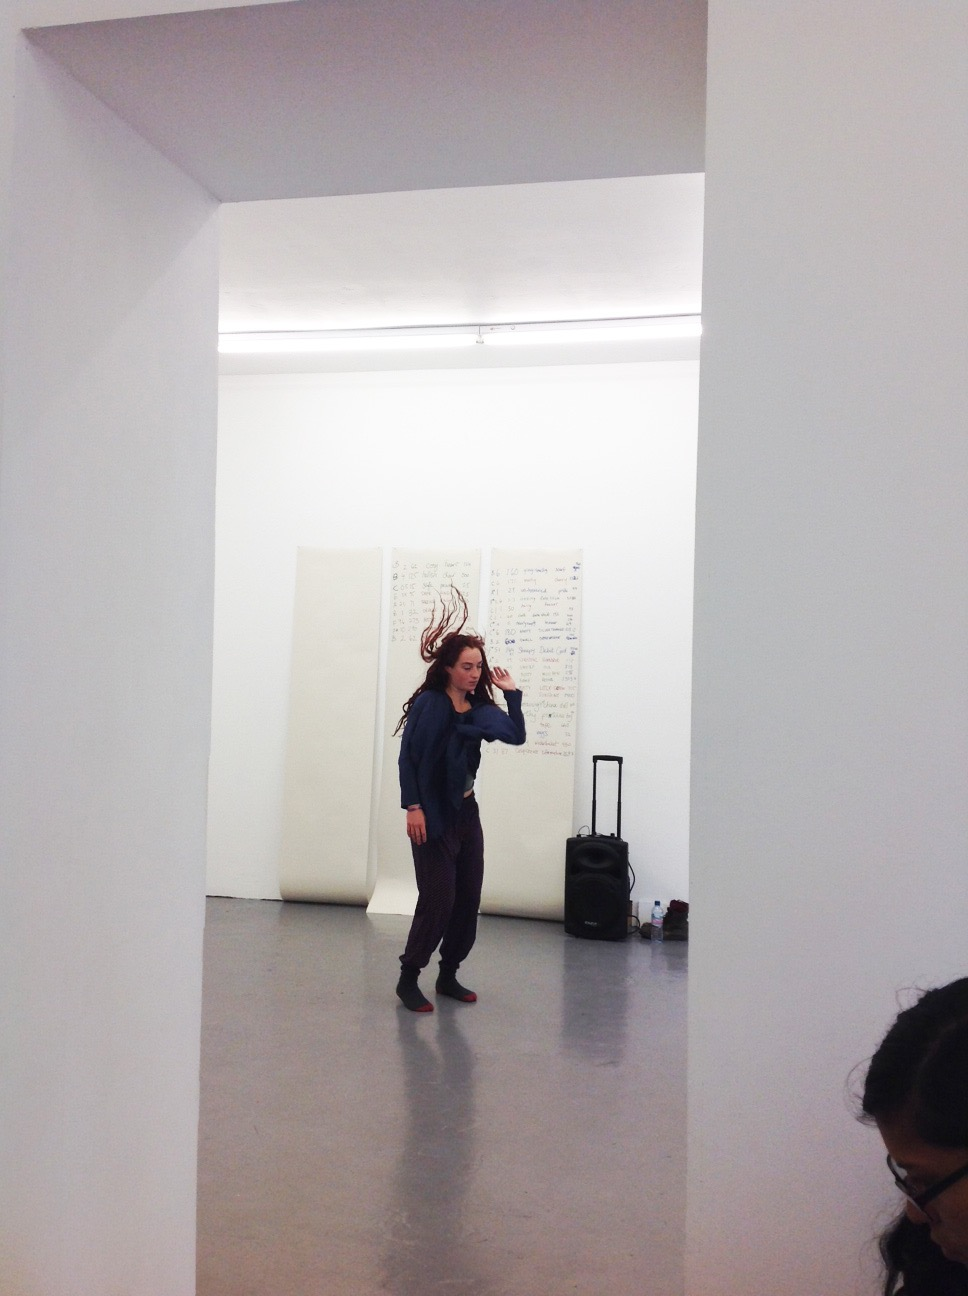 Isabella Efstathiou performance at PEER on Thursday 21 August